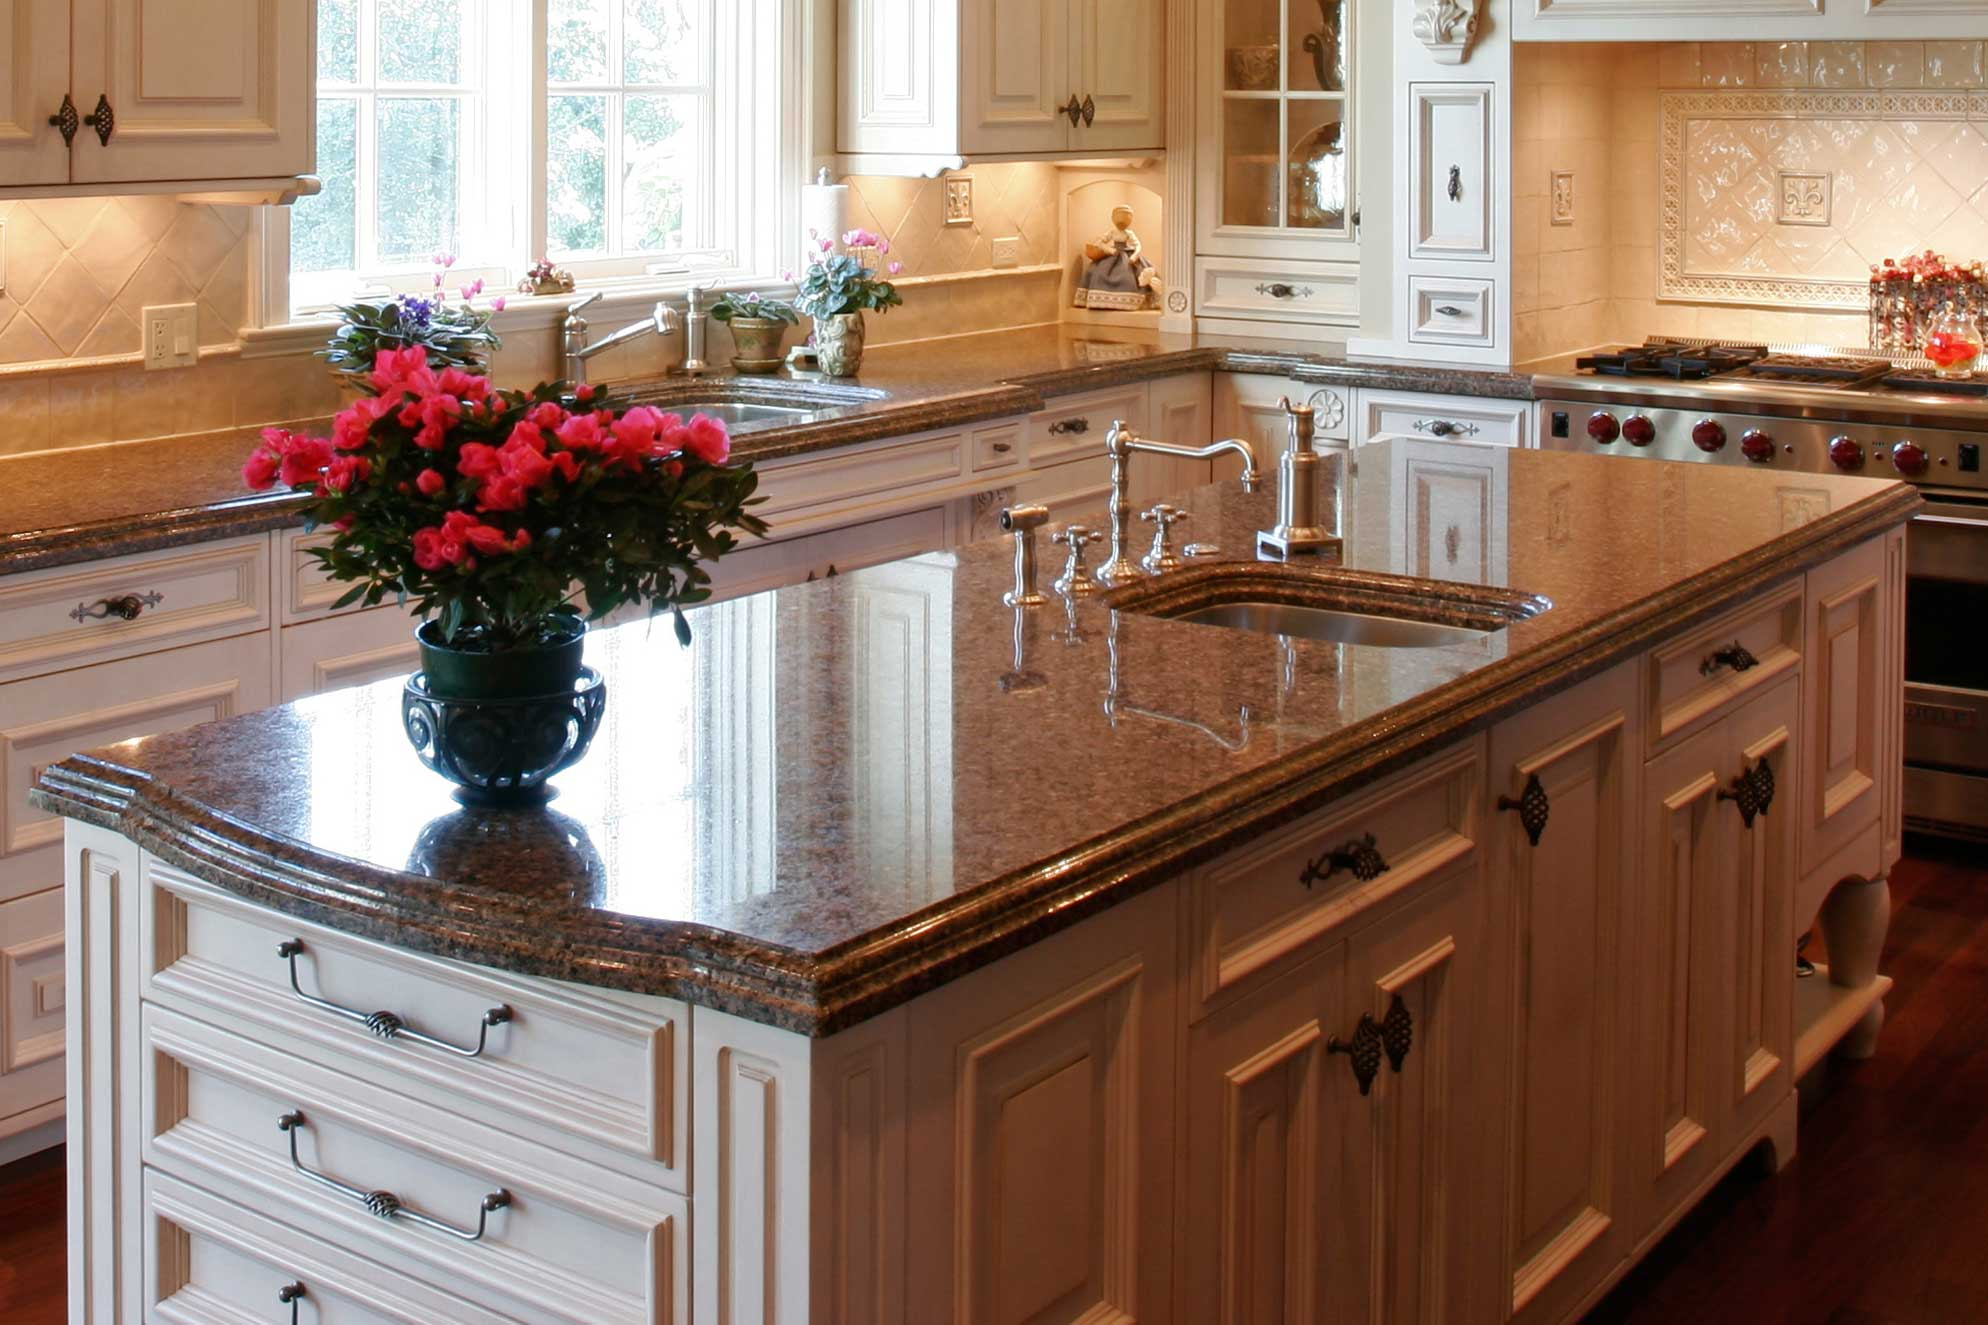 Kitchen Cabinets City Industry Nagpurentrepreneurs Kitchen Cabinets City  Industry Nagpurentrepreneurs